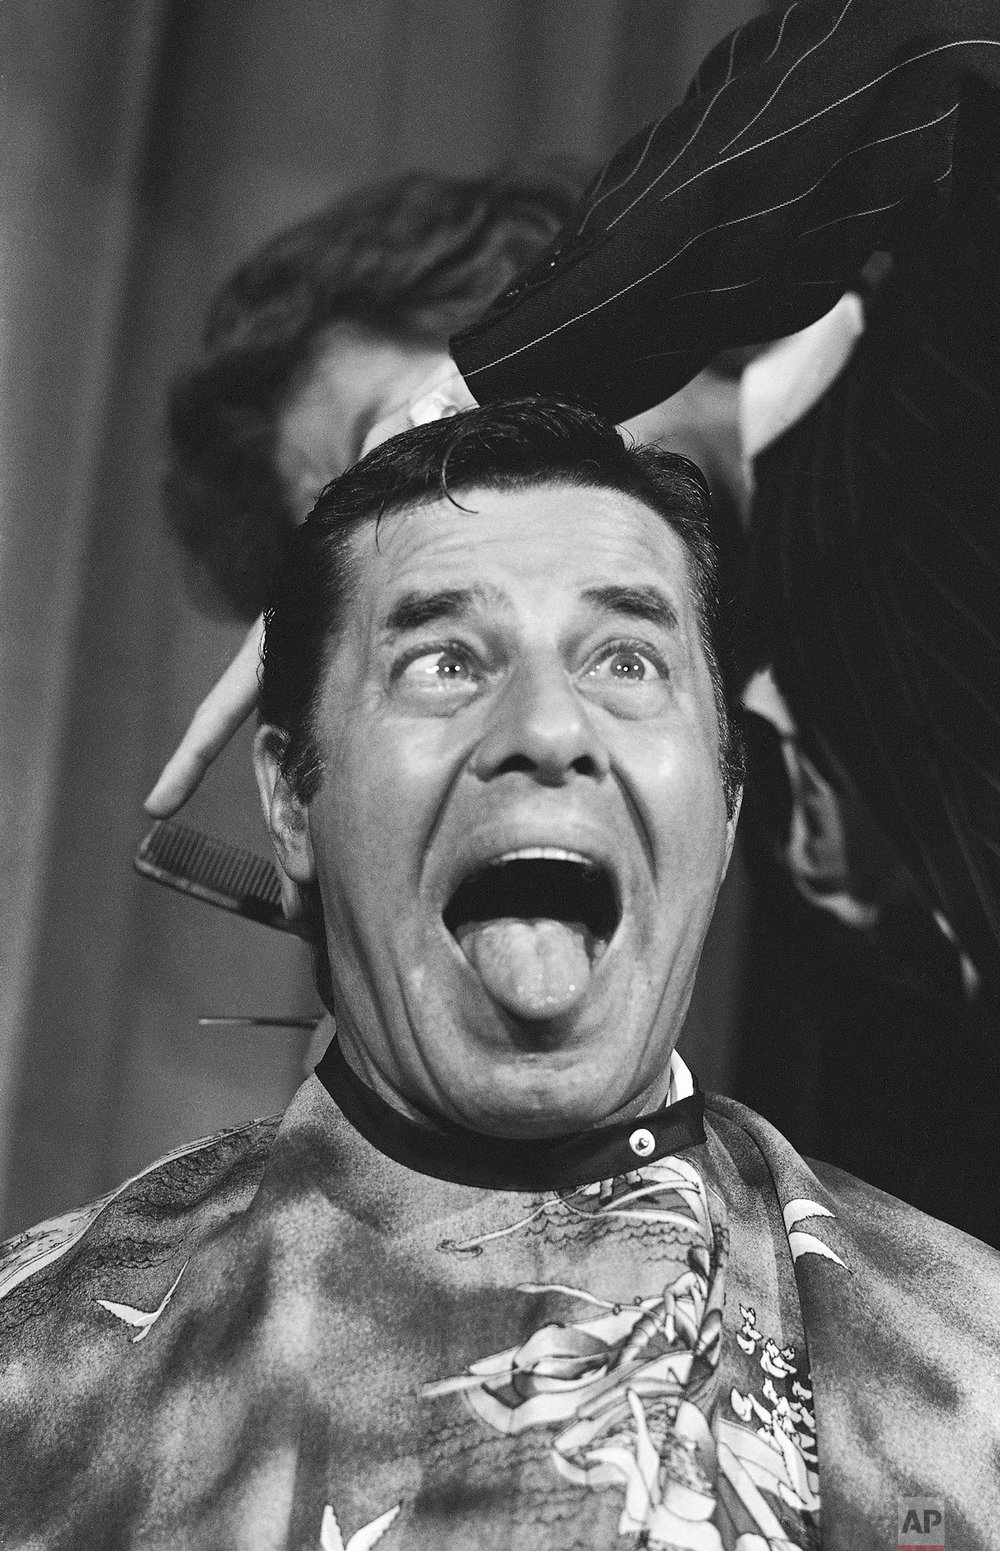 In a Oct. 16, 1977 photo, comedian Jerry Lewis cuts up during a haircut for the Muscular Dystrophy Association. Lewis was given a $250,000, the promissory note stipulating that he get his hair trimmed. (AP Photo/Phil Sandlin)